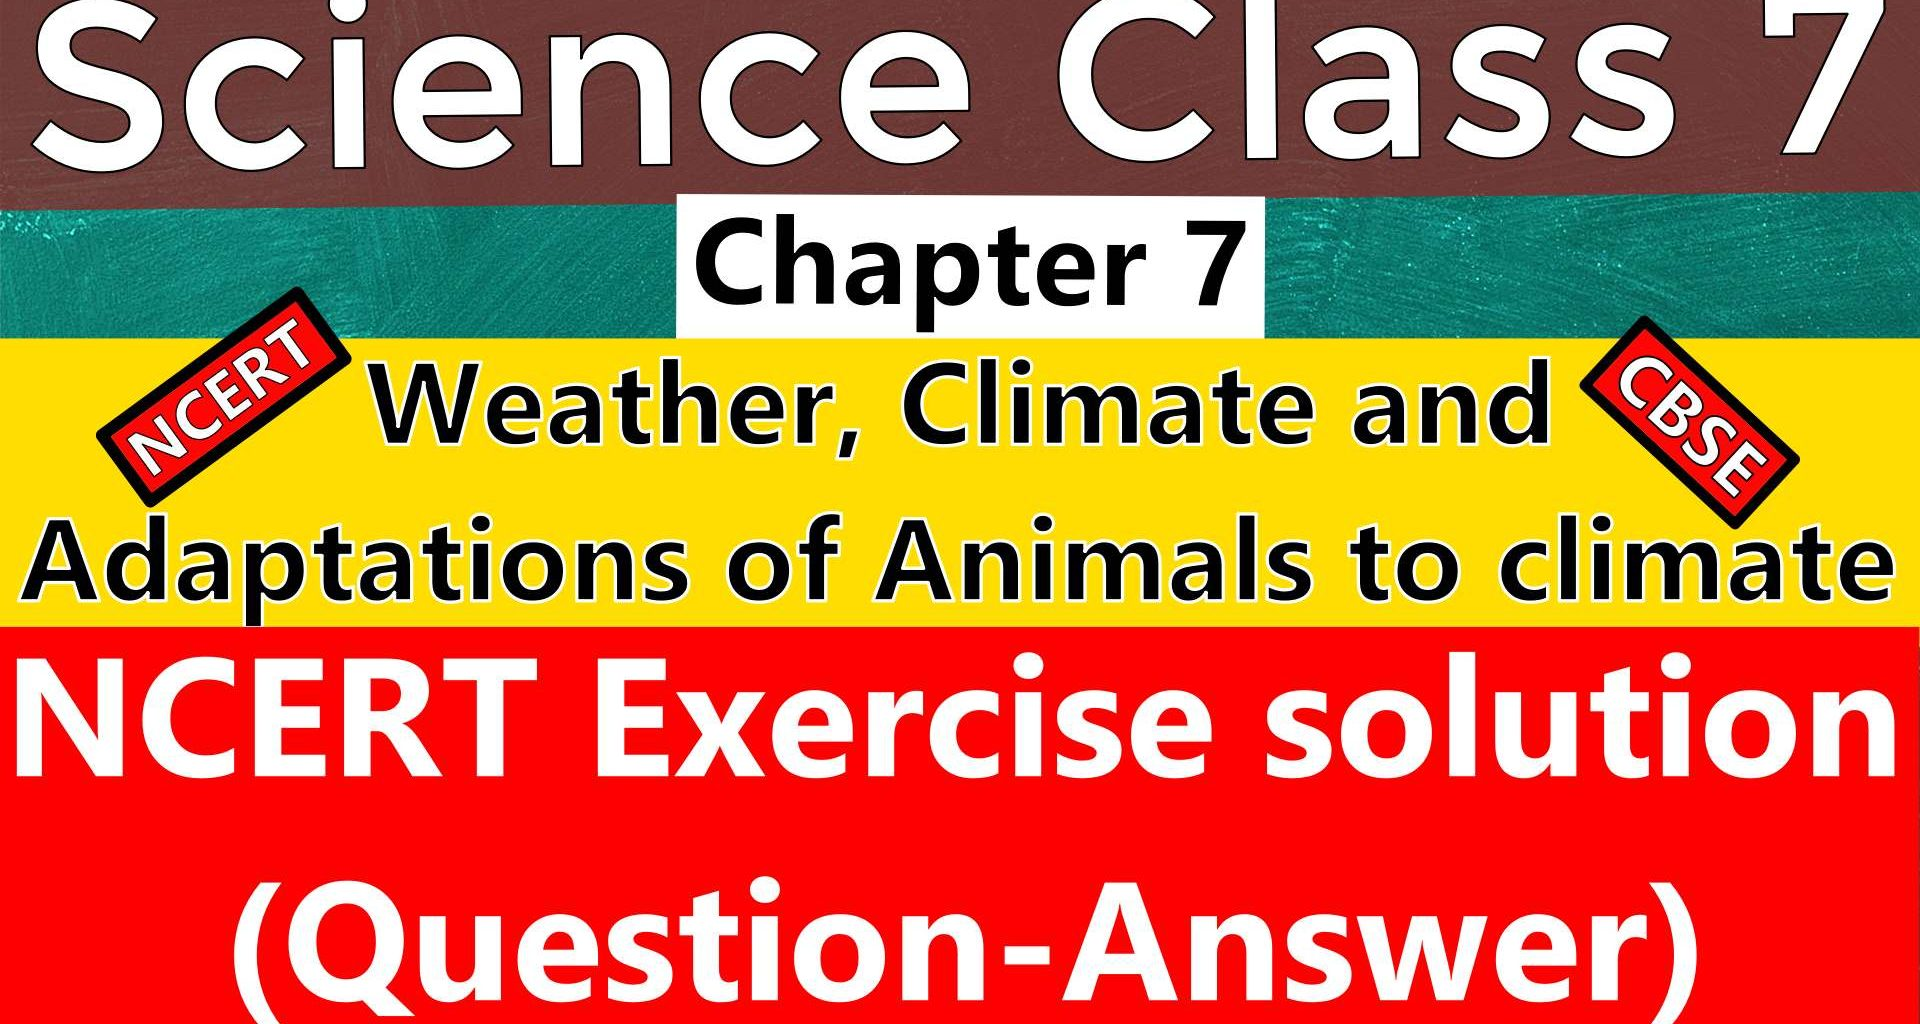 Science Class 7 Chapter 7 Weather, Climate and Adaptations of Animals to climate- NCERT Exercise Solutions (Question-Answer)